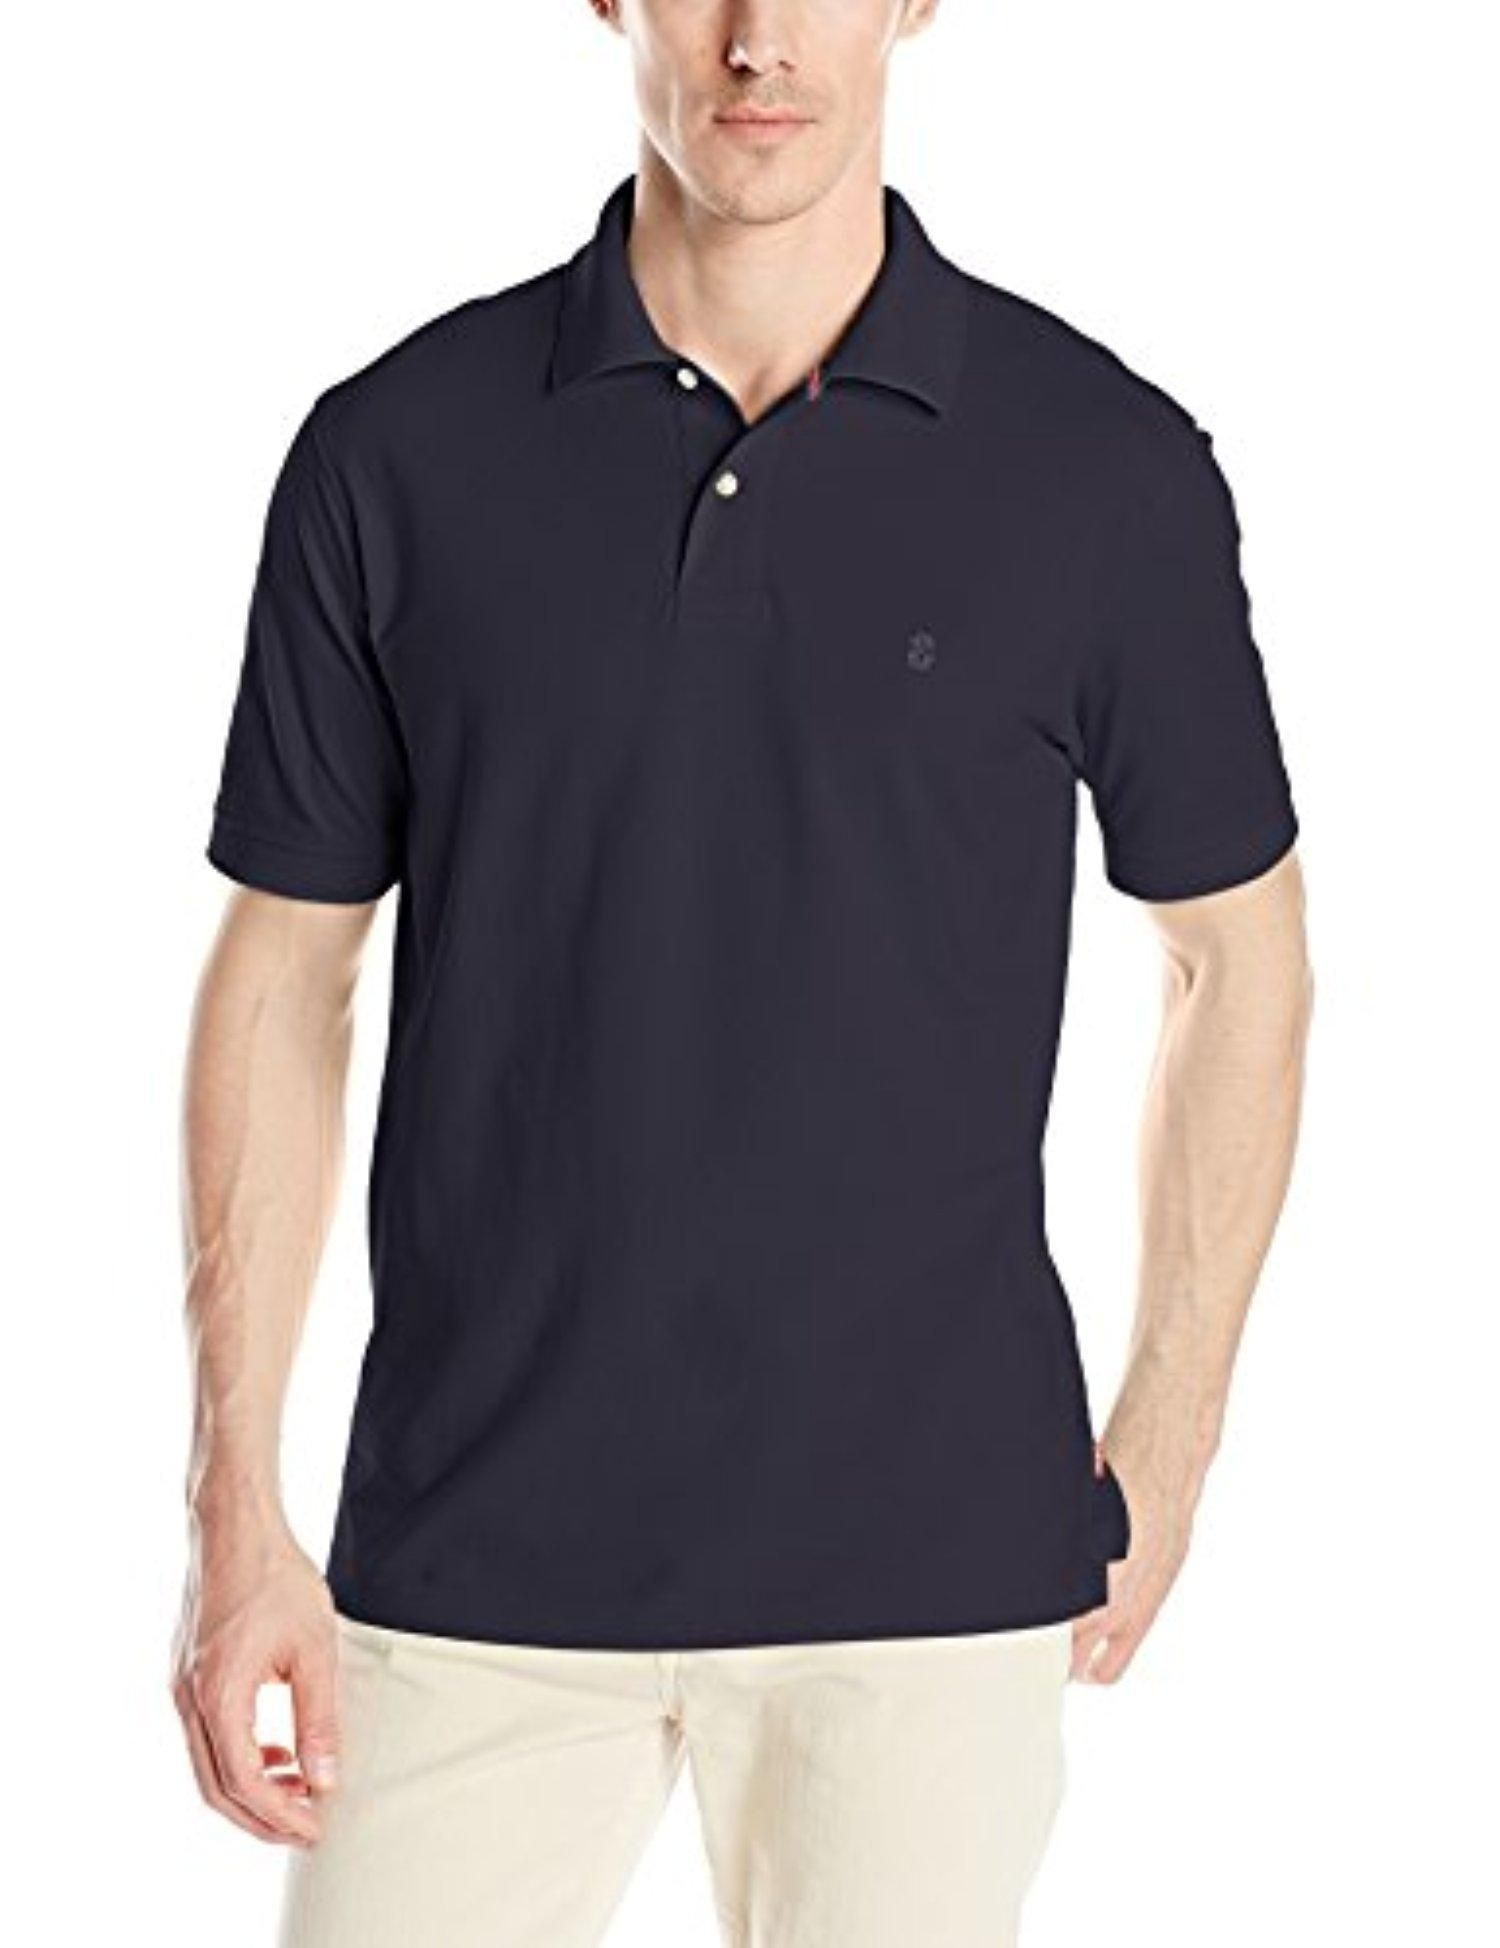 684652ad6d6f7 Izod Polo Shirts Wholesale – Rockwall Auction